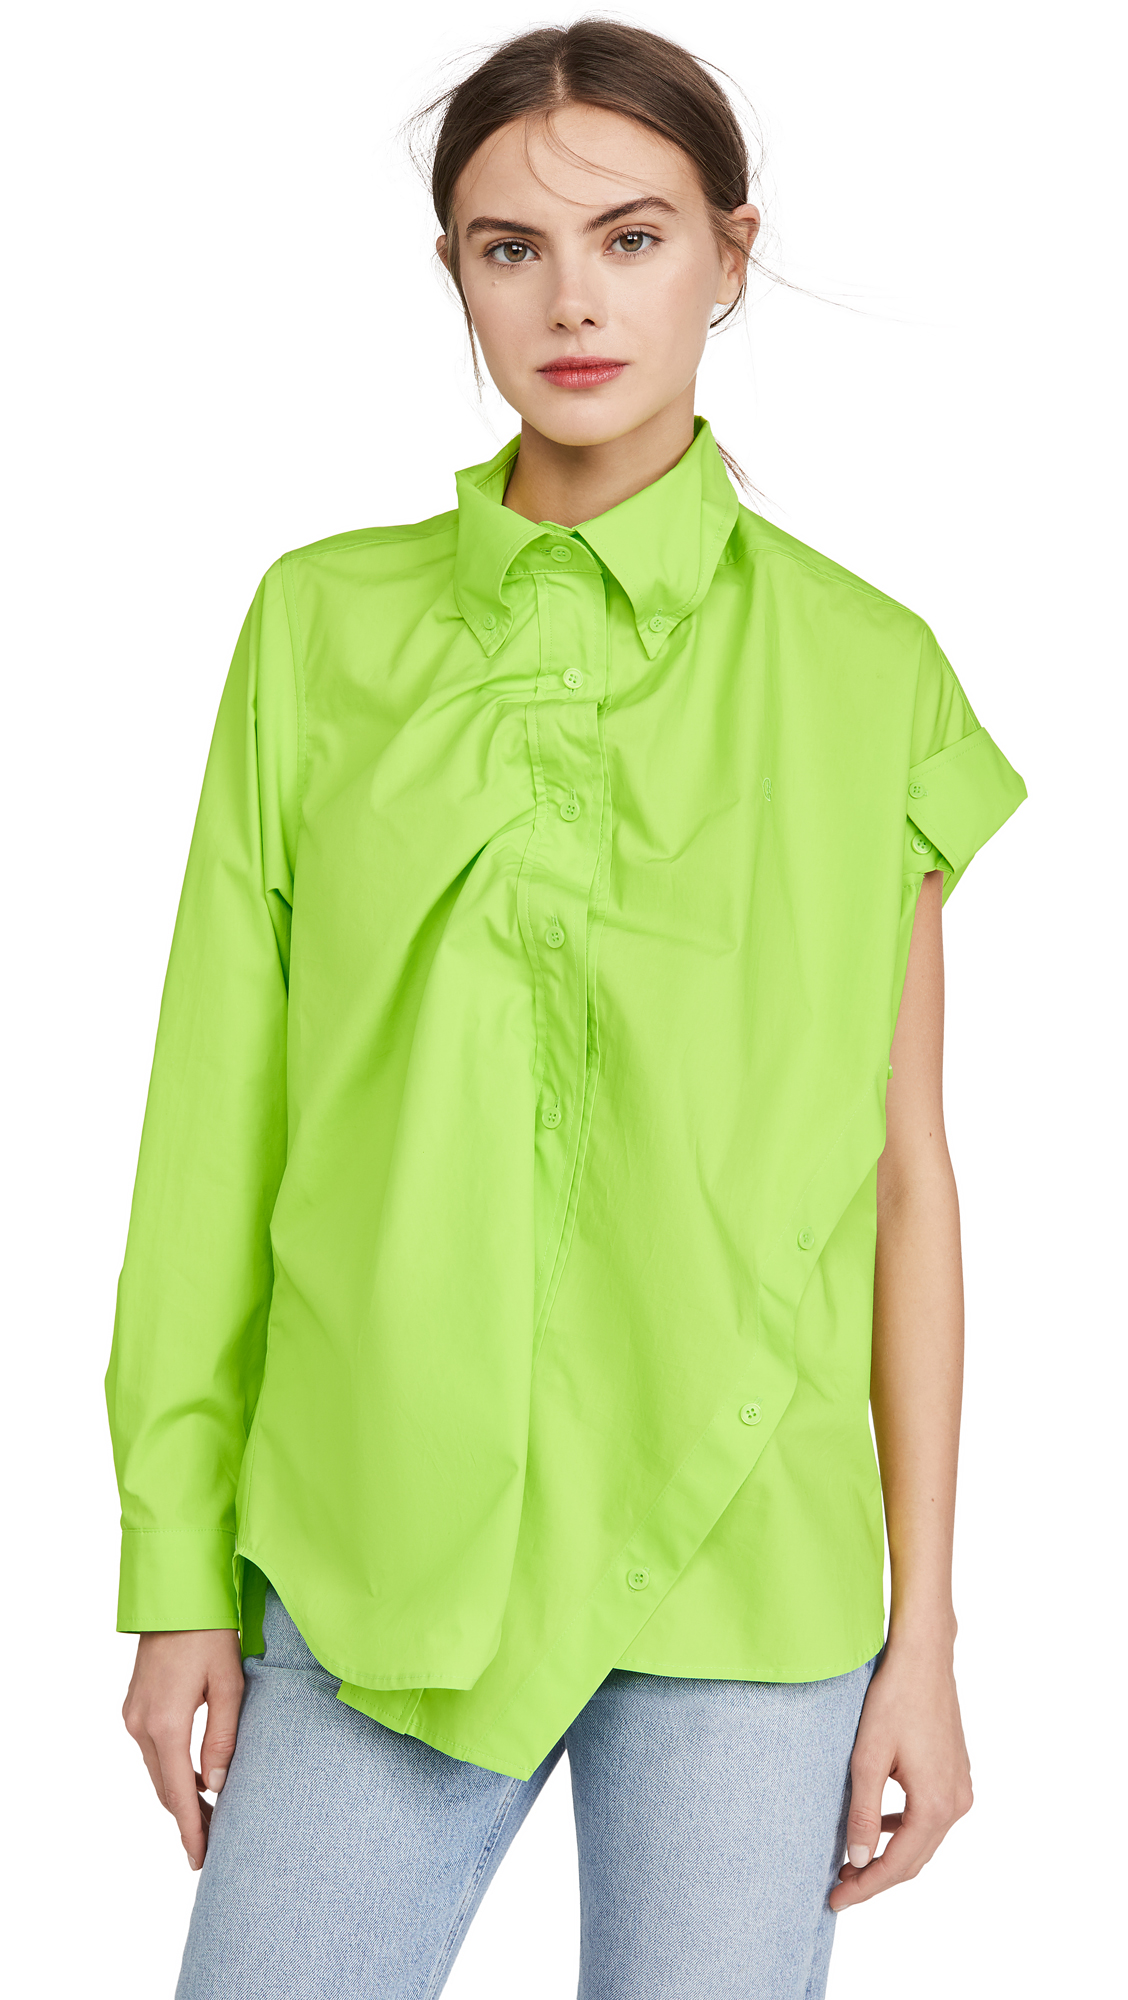 pushBUTTON Collar Detail Sleeved Shirt - 50% Off Sale